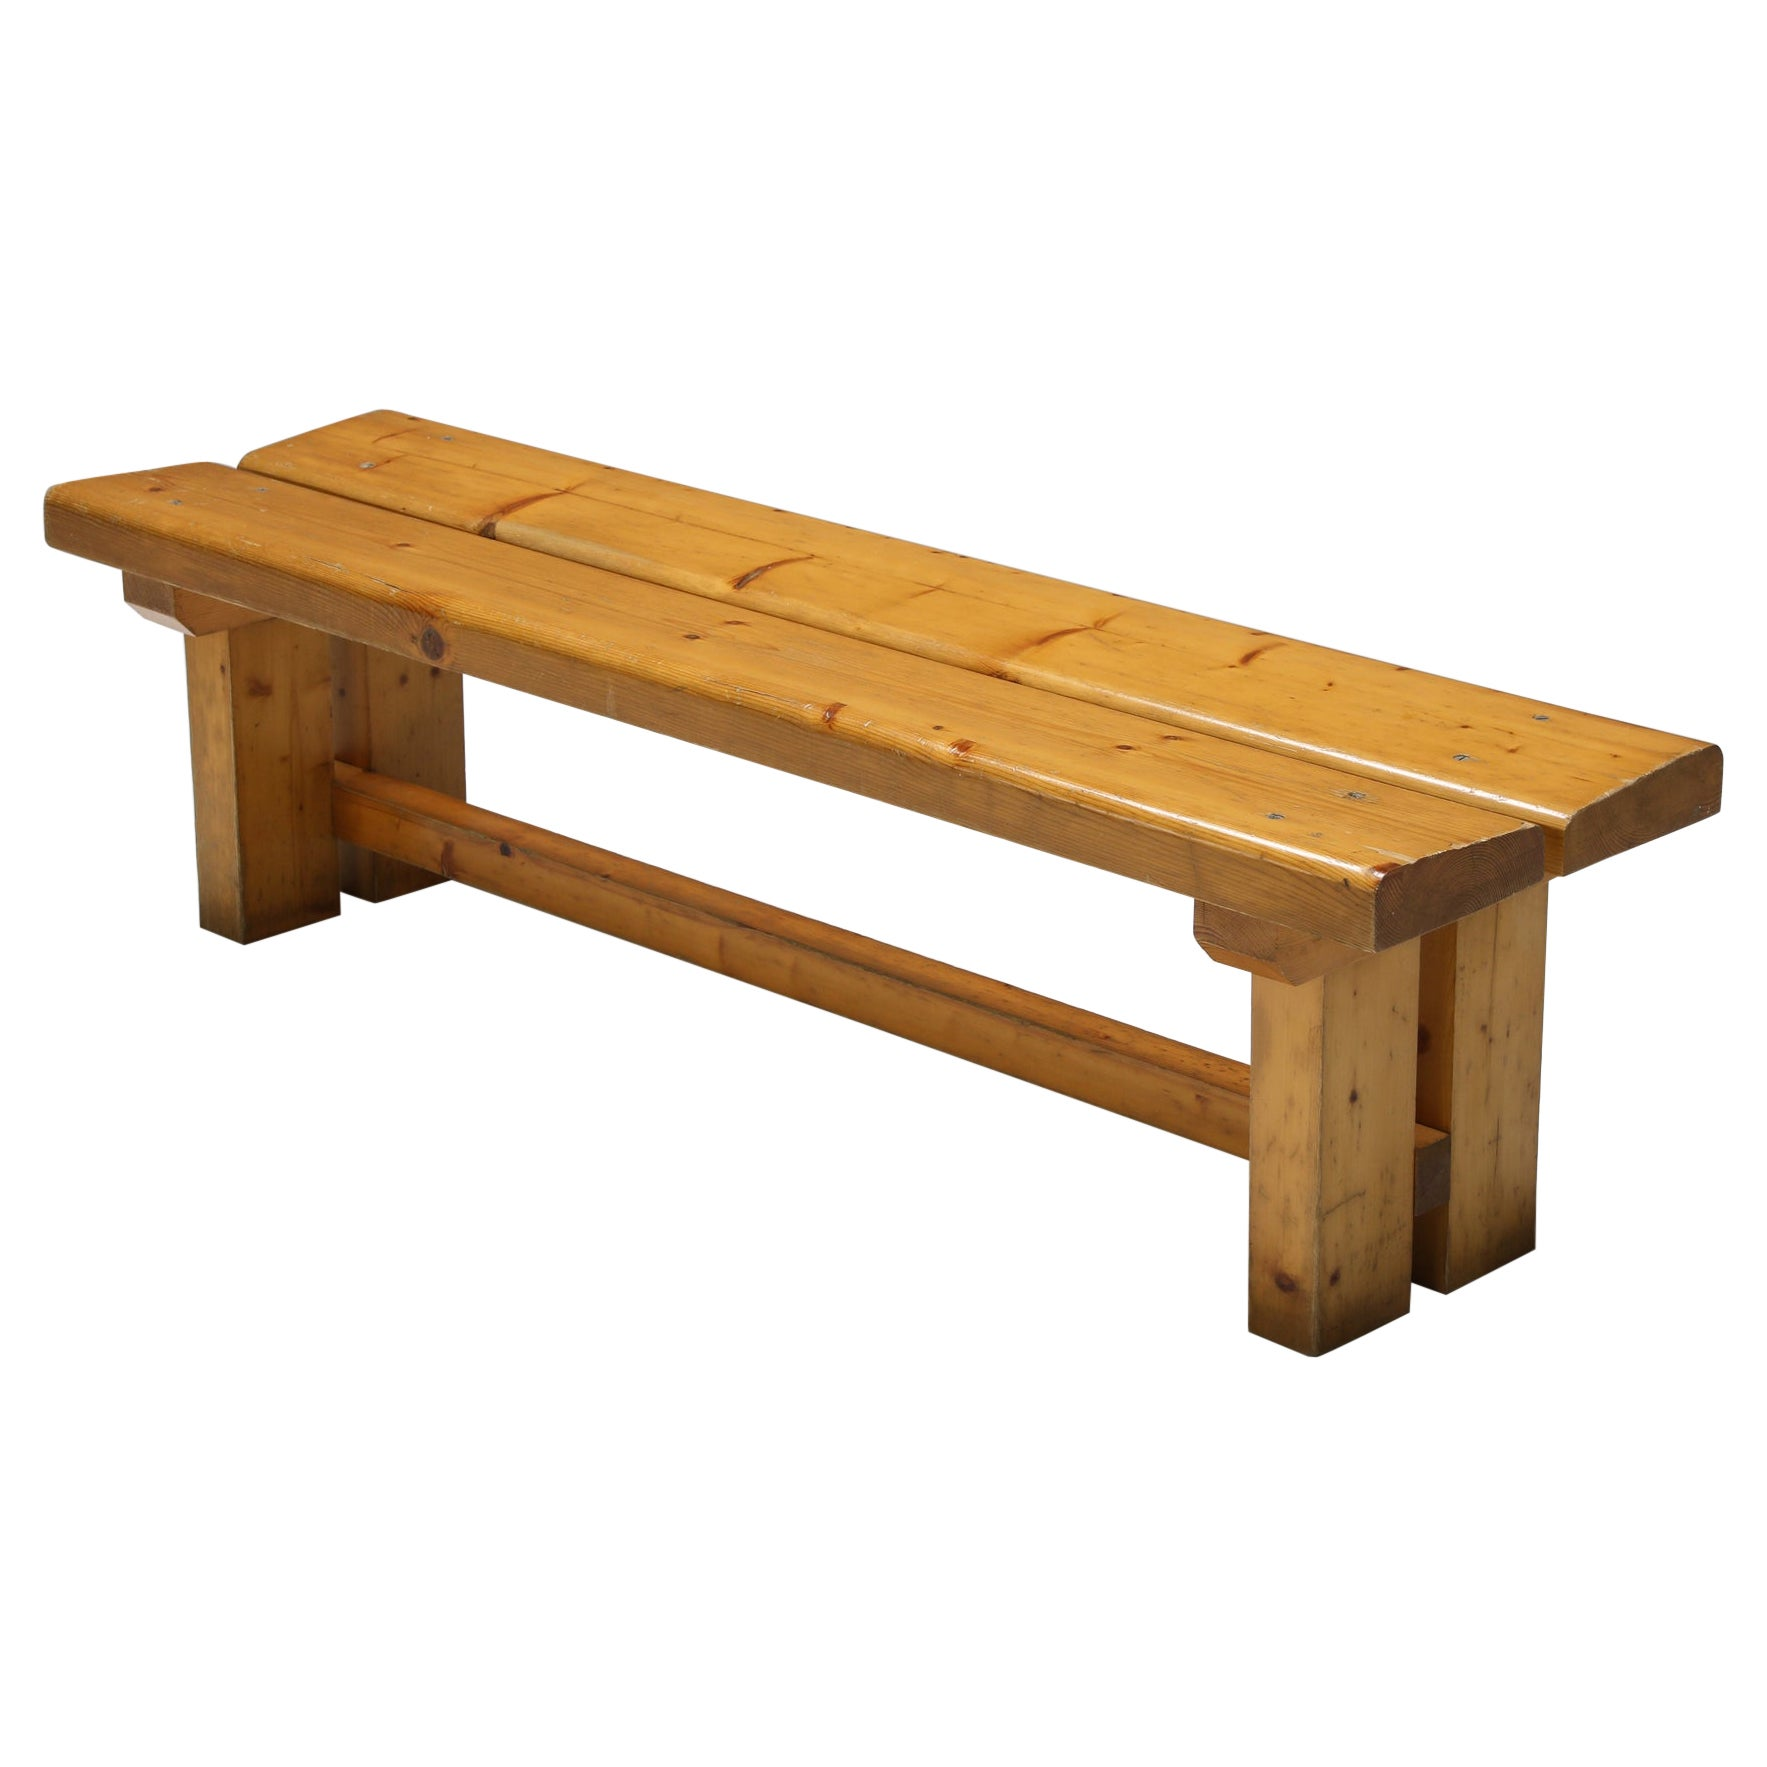 Pine Bench Les Arc Charlotte Perriand, French Modernism